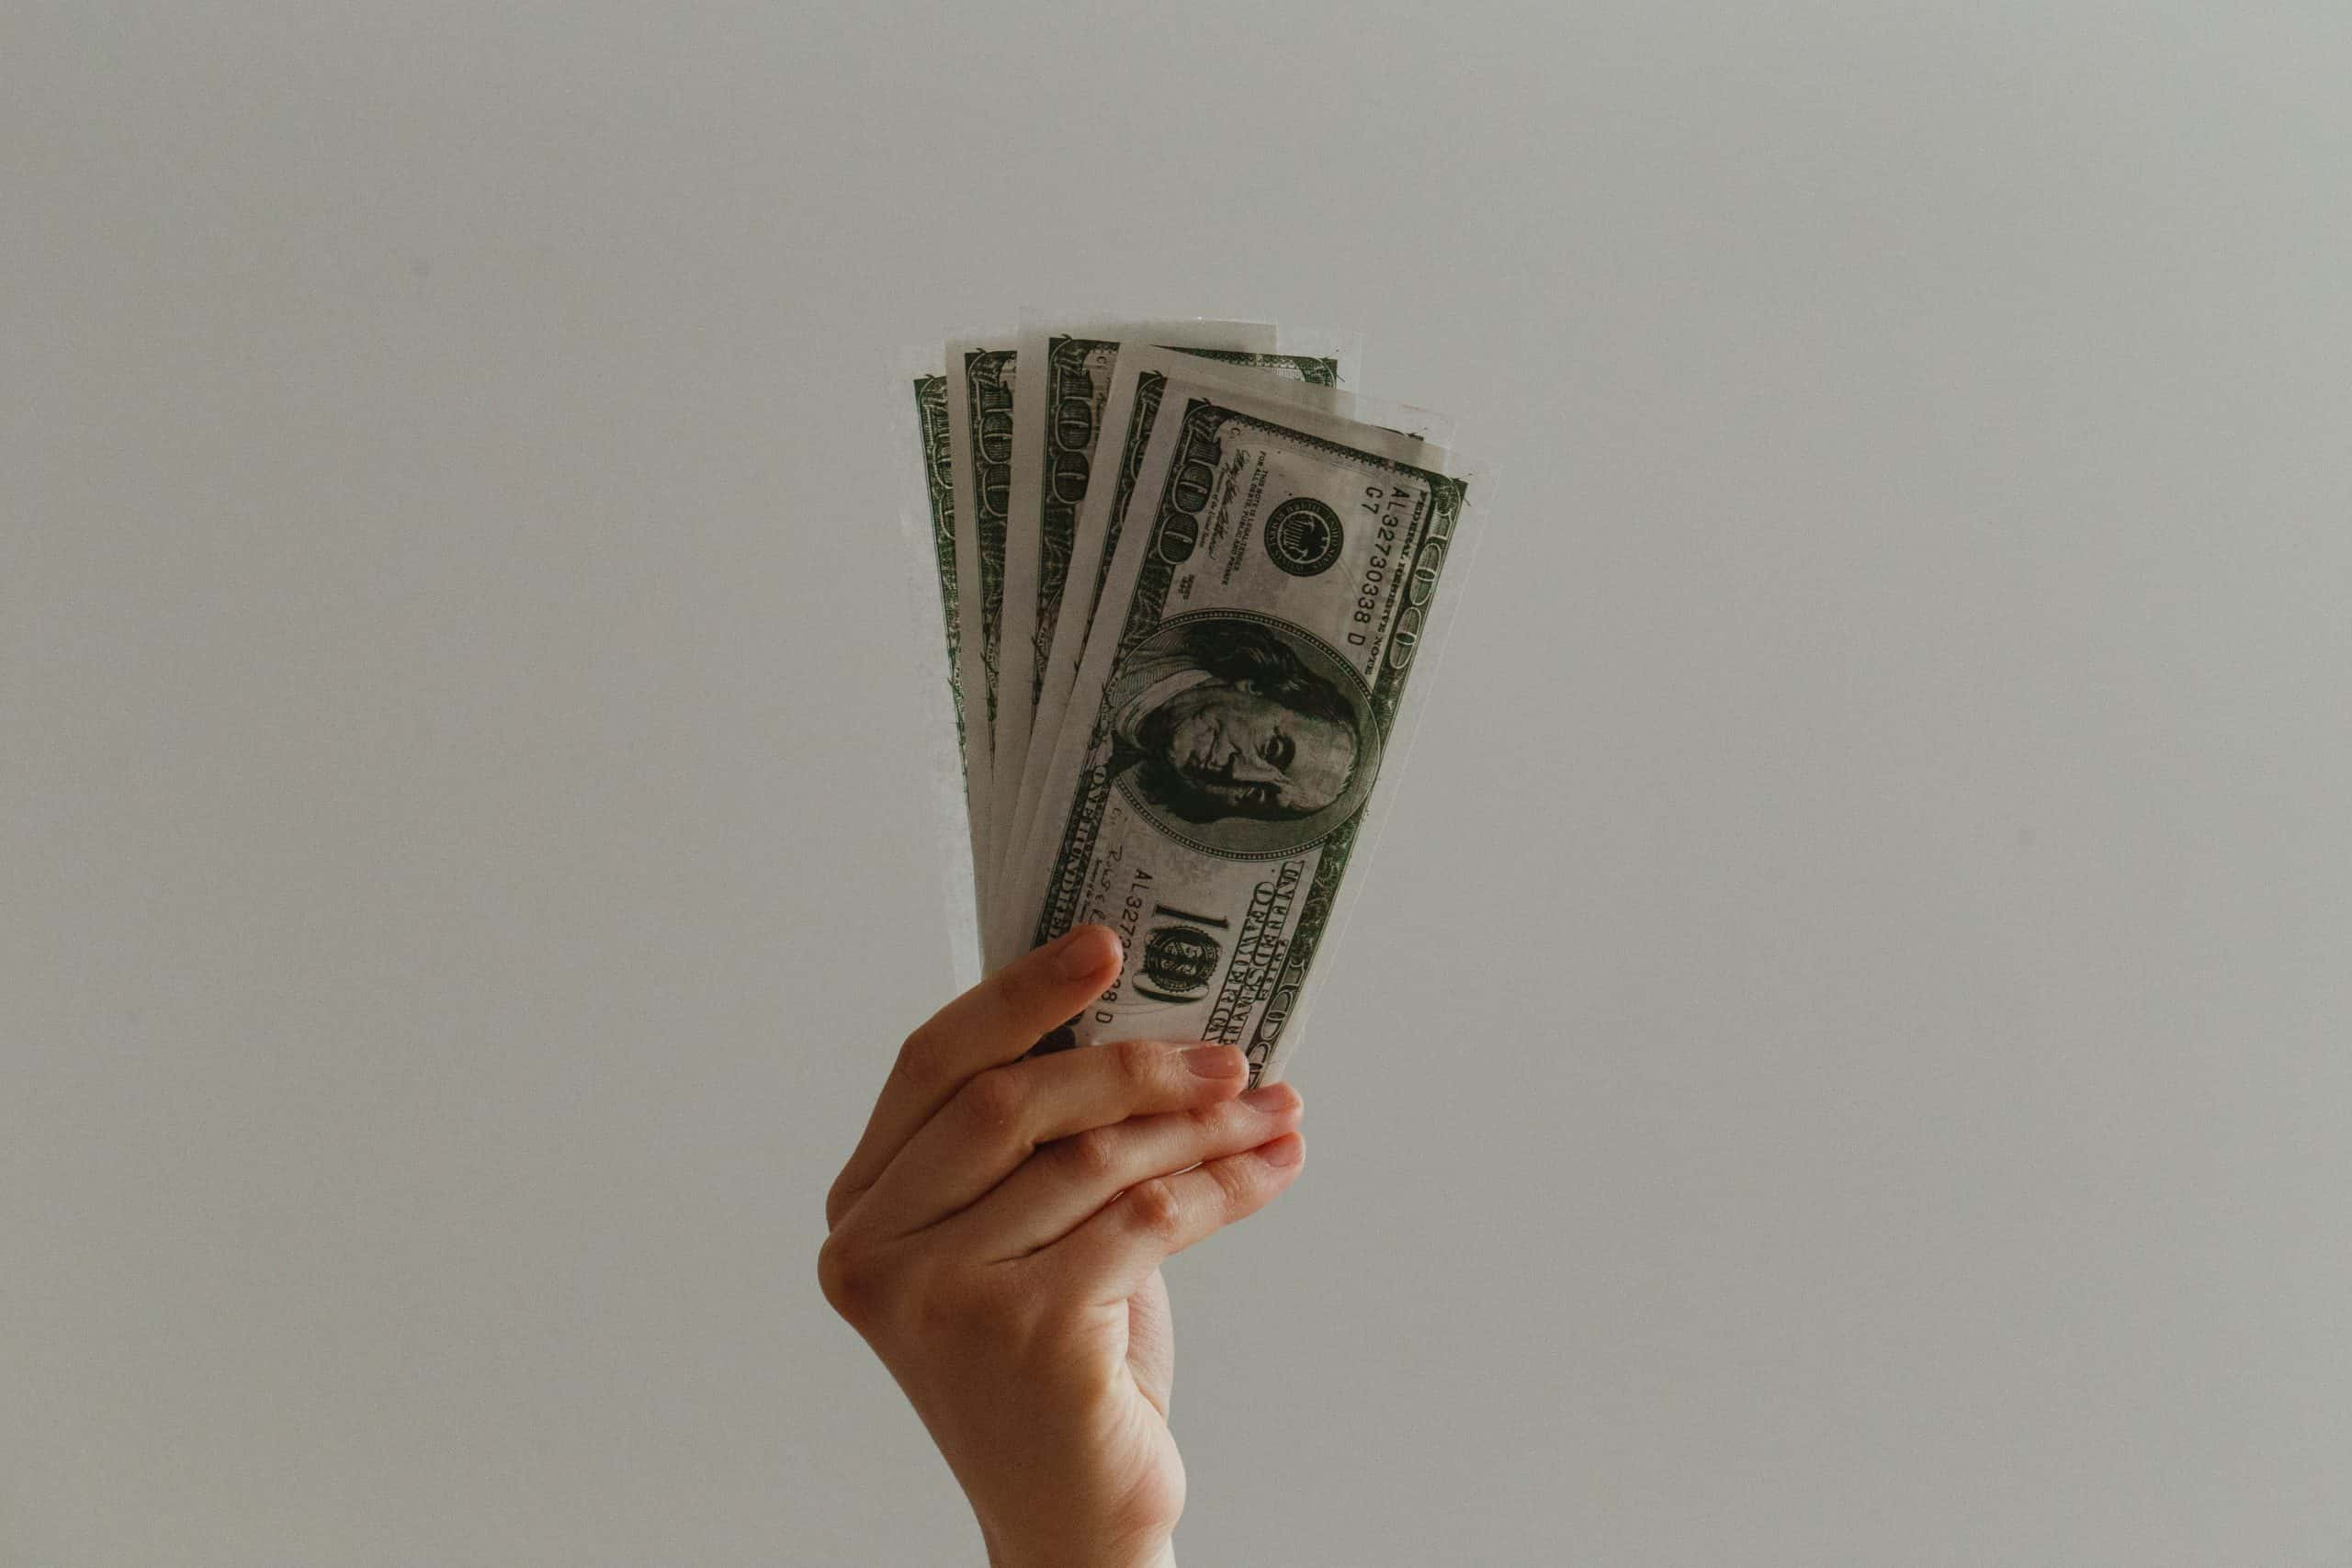 hand holding a stack of 100 dollar bills spread out in a fan in front of a white wall